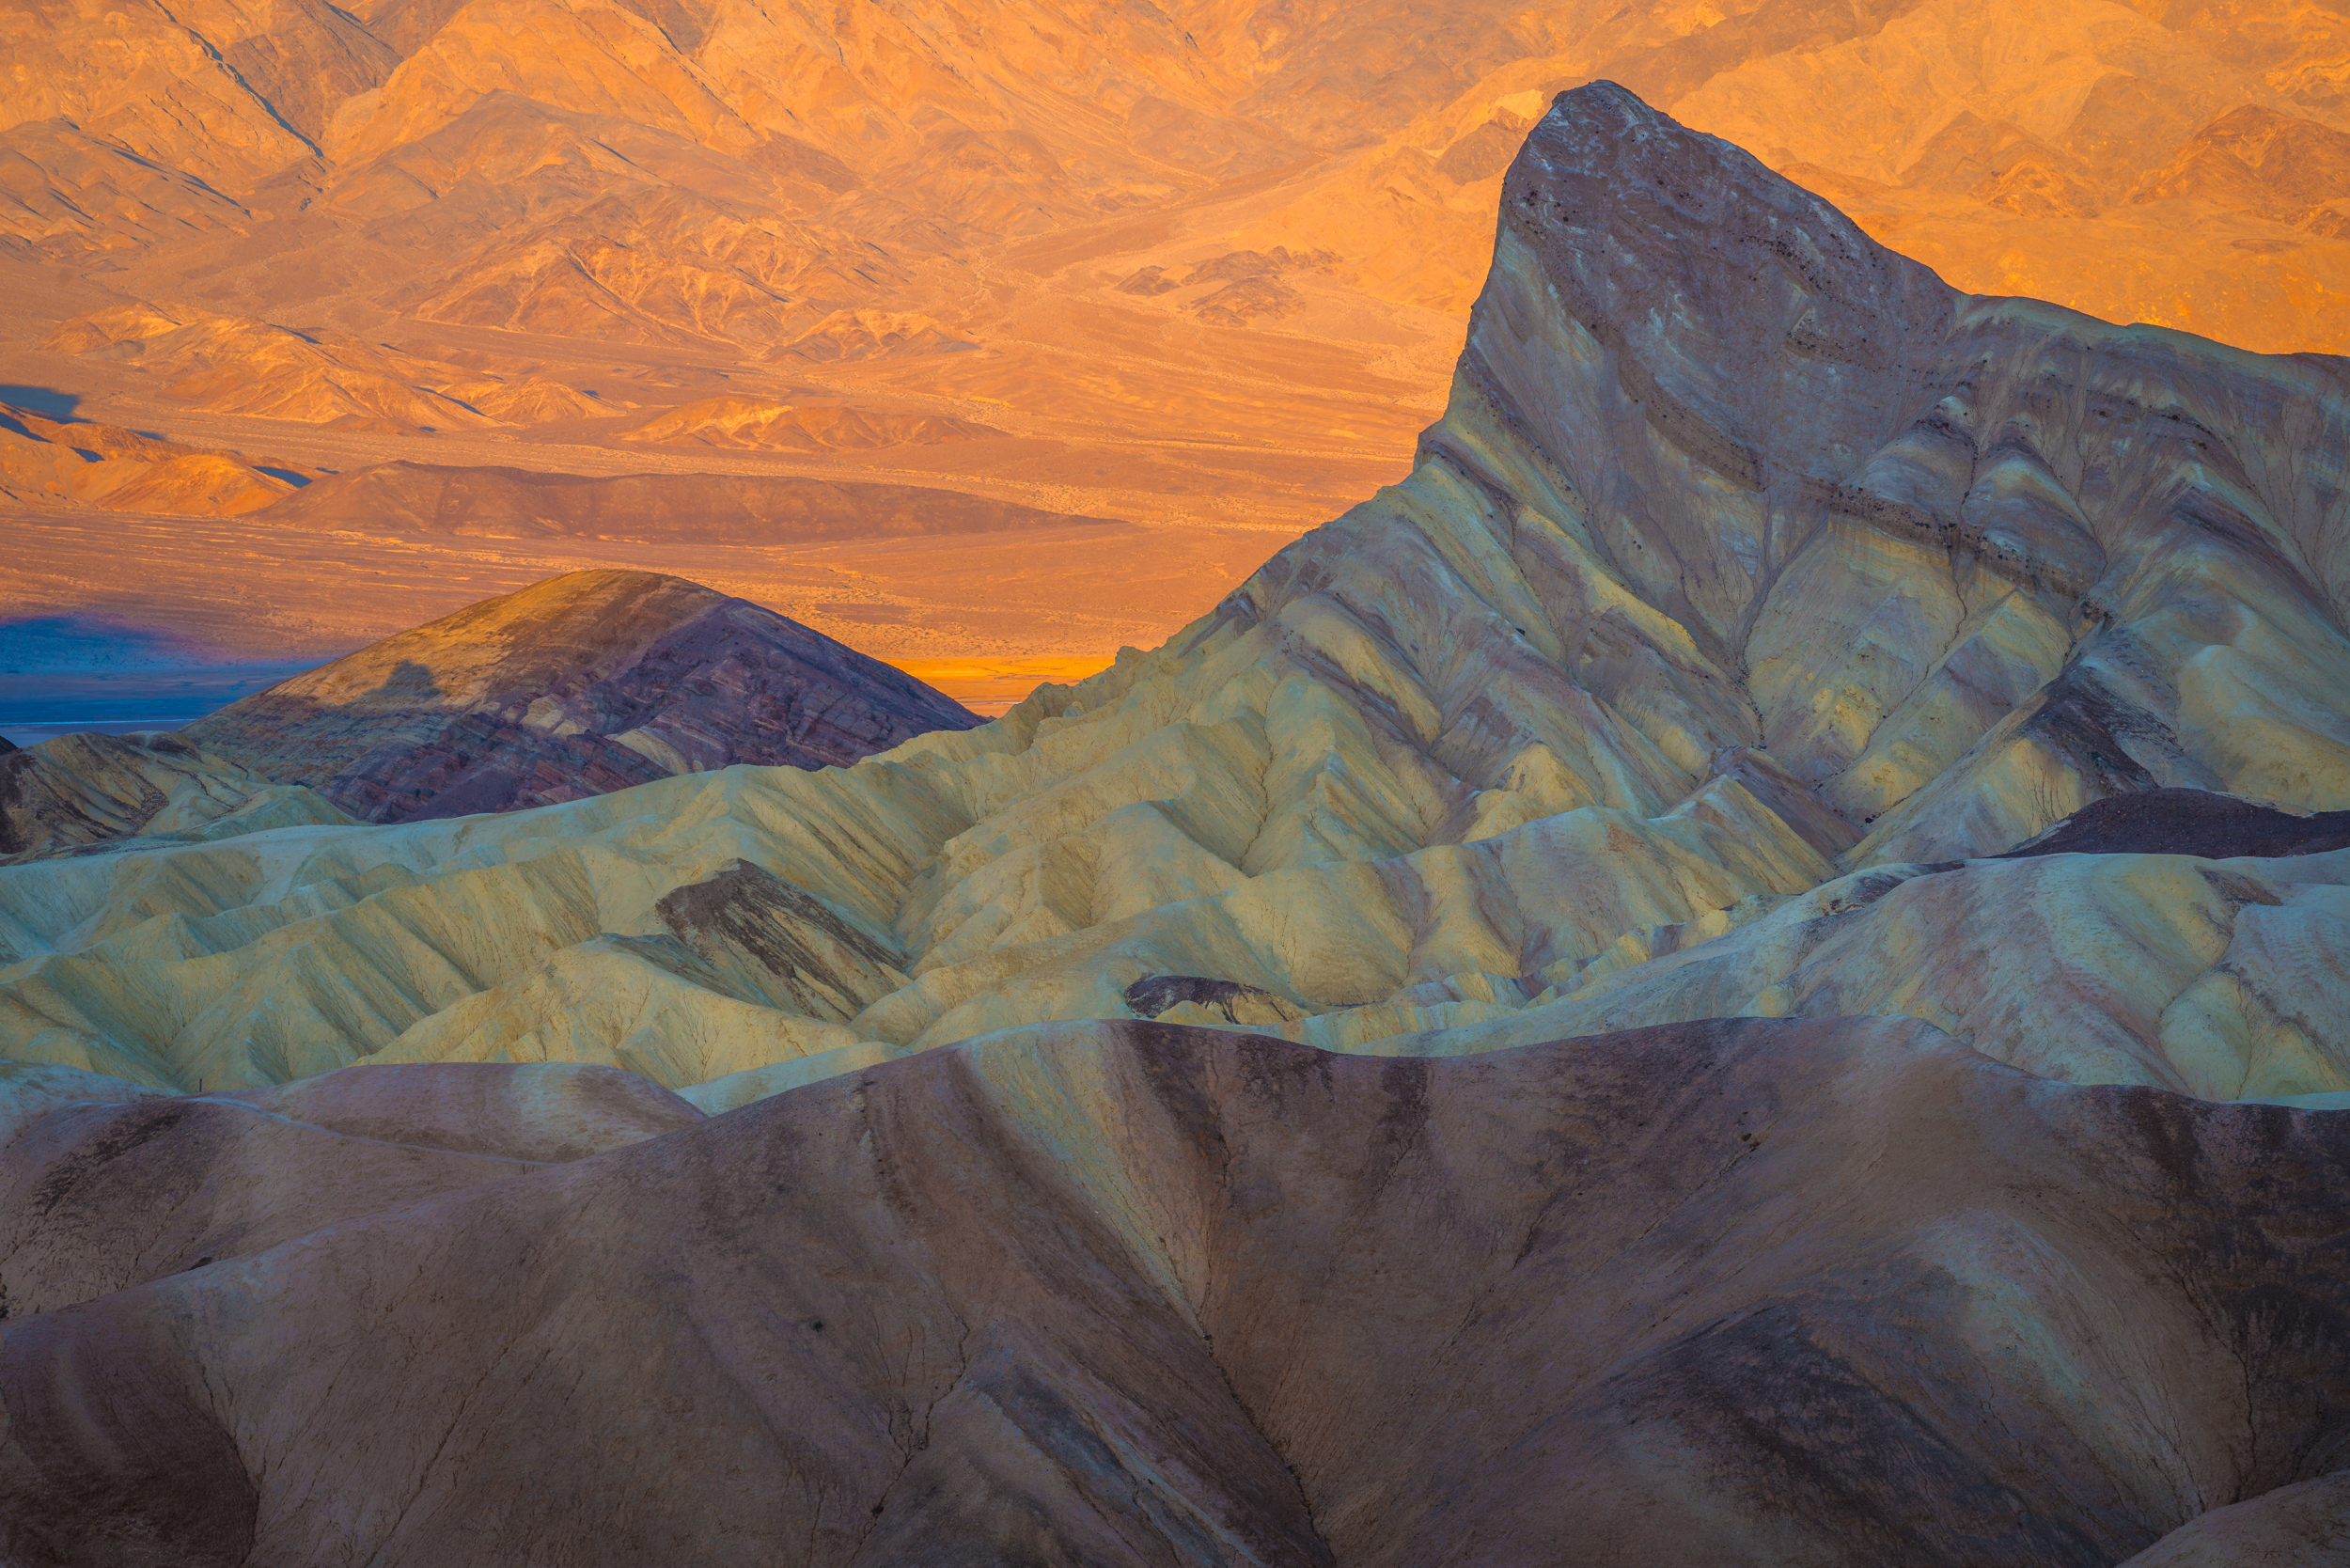 Warm morning light bathes the mountains in the background at Zabriskie Point in Death Valley